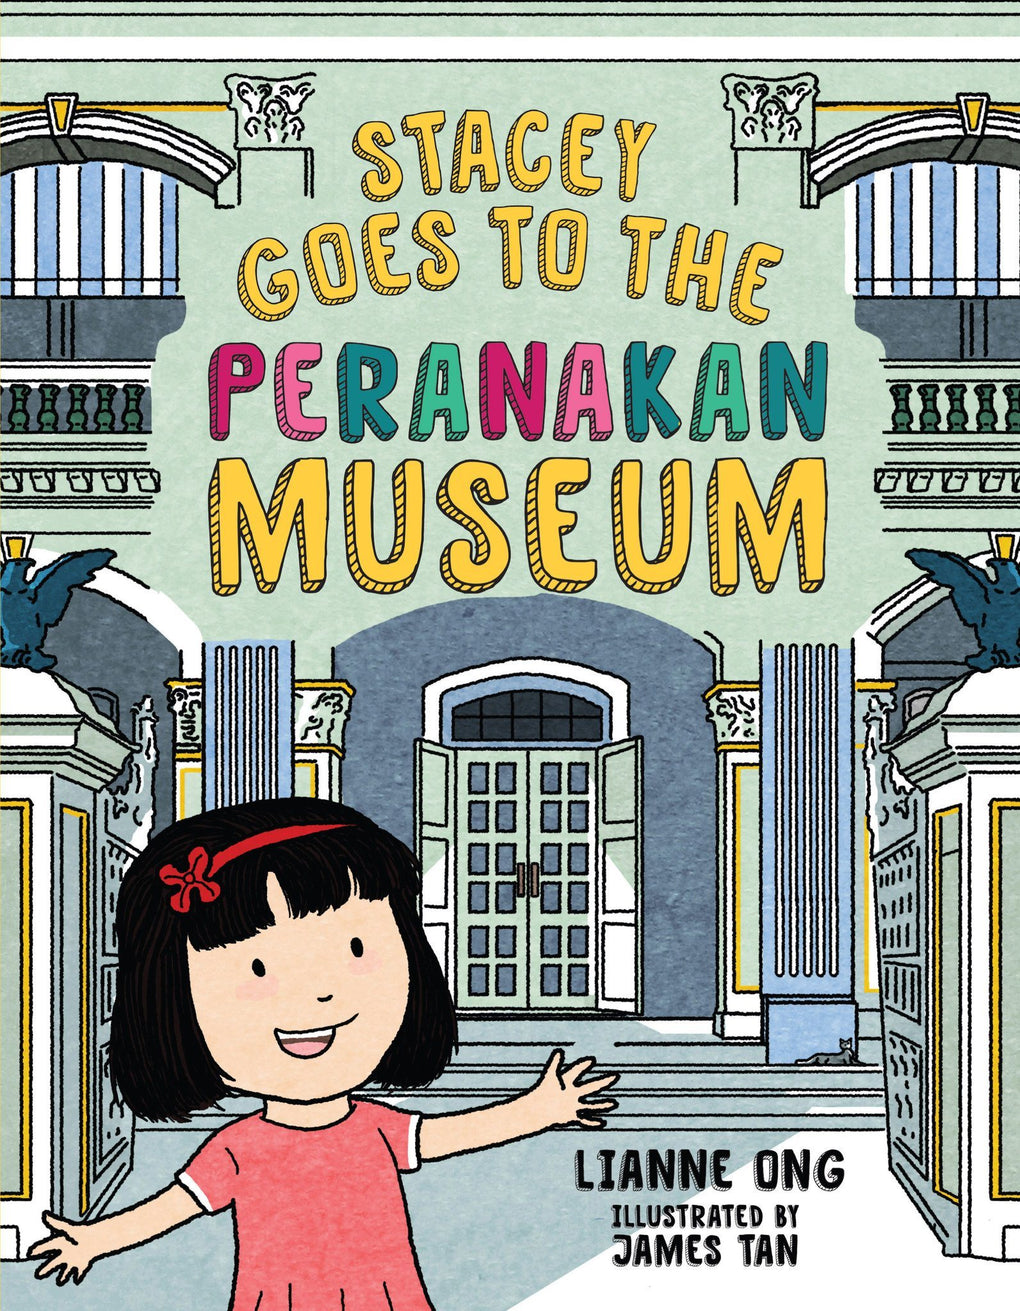 Stacey and The Museums (Children's Book Series) - 3-Part Series Local Children Books Lianne Ong